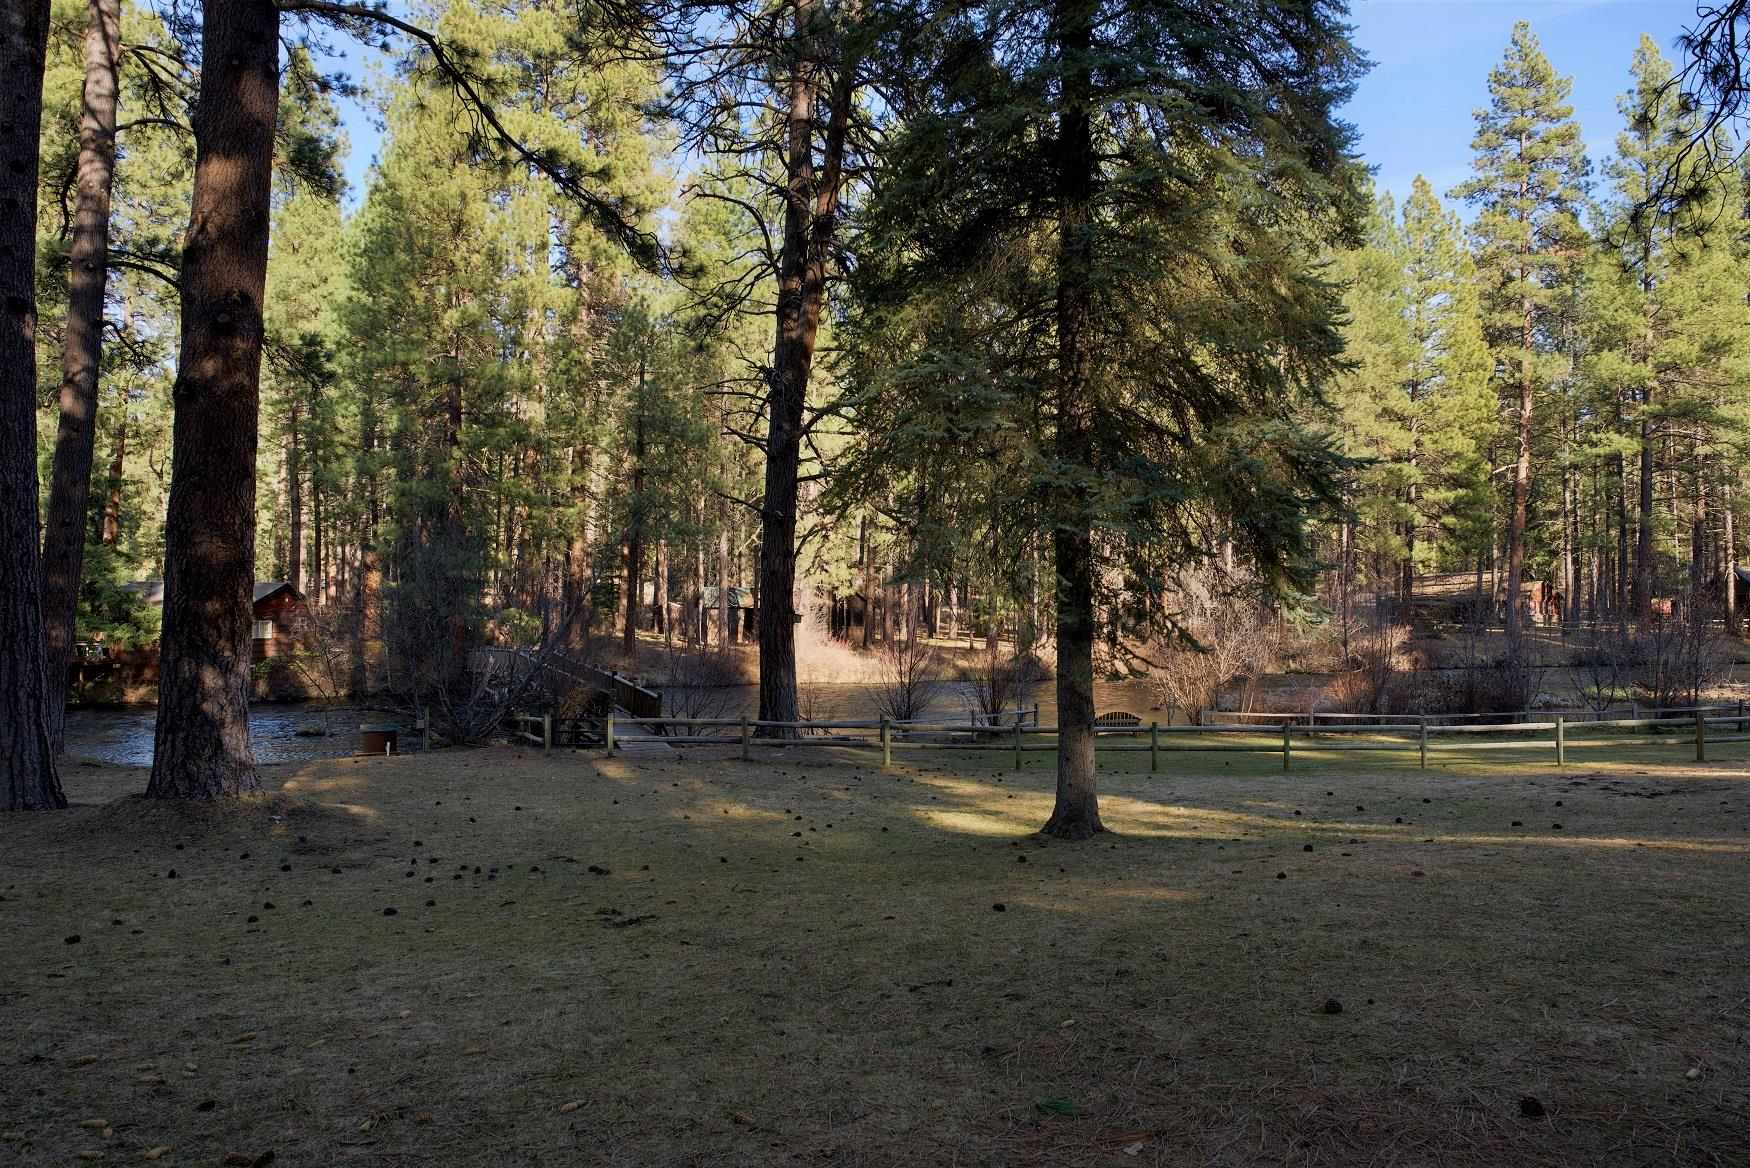 A perfect view of the Metolius River, off the deck of Haberman Cabin, at Cold Springs Resort in Camp Sherman, Oregon